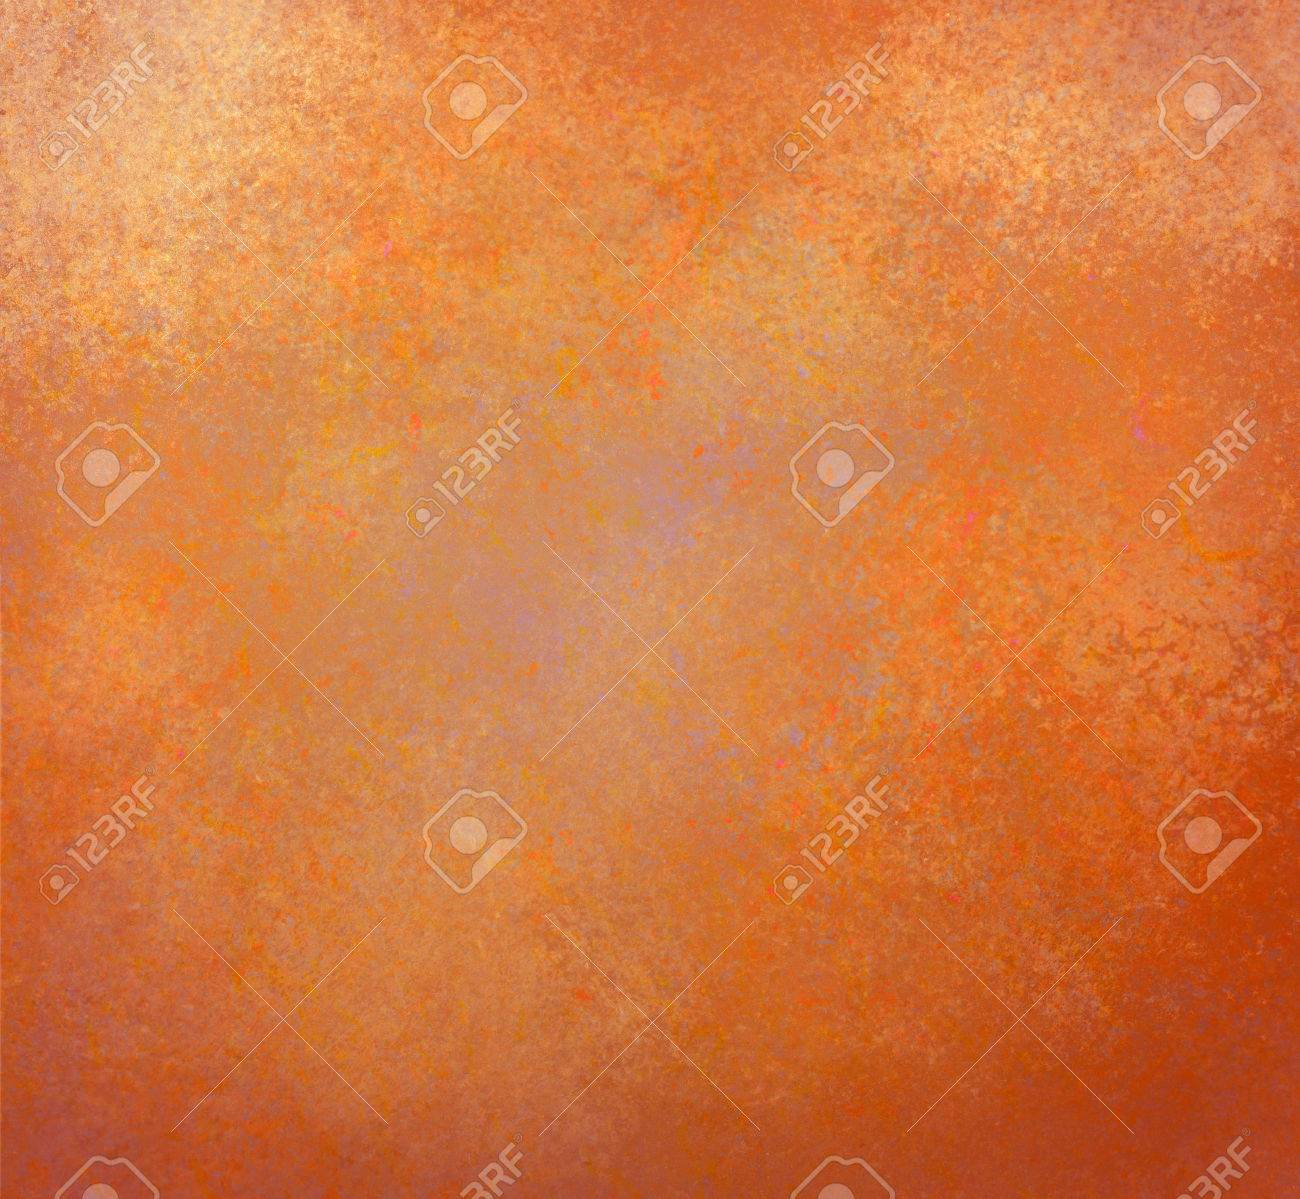 Rustic Orange Gold Background With Vintage Textured Paint Stock Photo